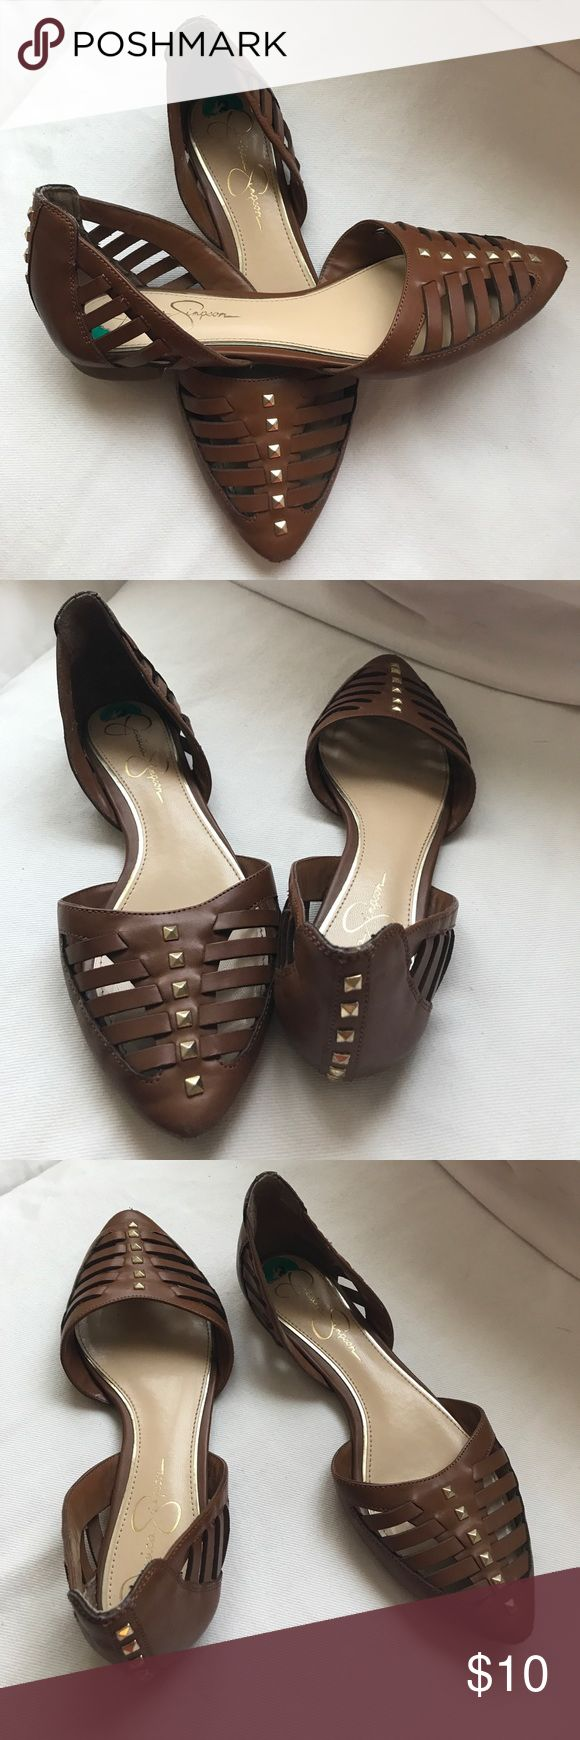 Jessica Simpson 8 flats Wear on front points. Cognac color. Jessica Simpson Shoes